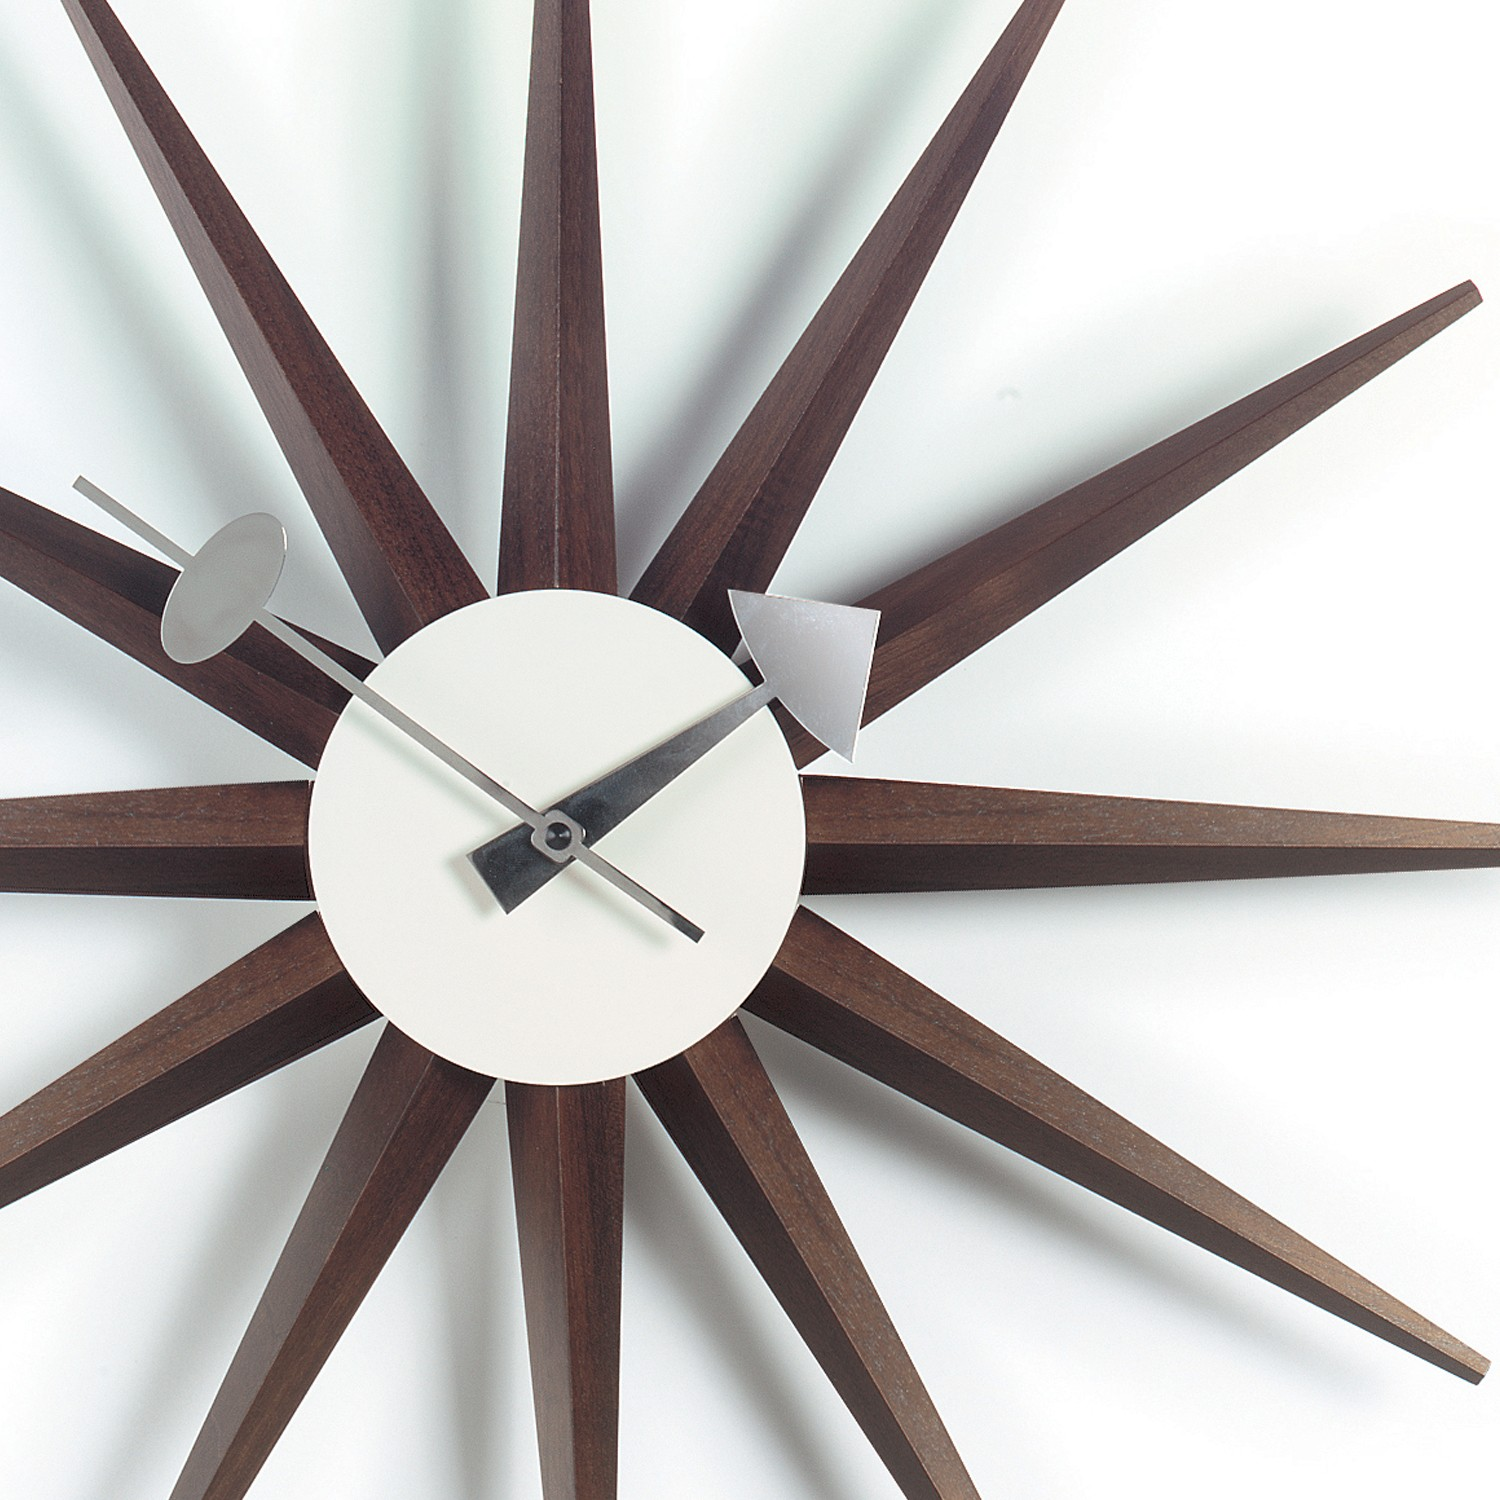 thebazaarlista vitra sunburst wall clock i 25 off. Black Bedroom Furniture Sets. Home Design Ideas